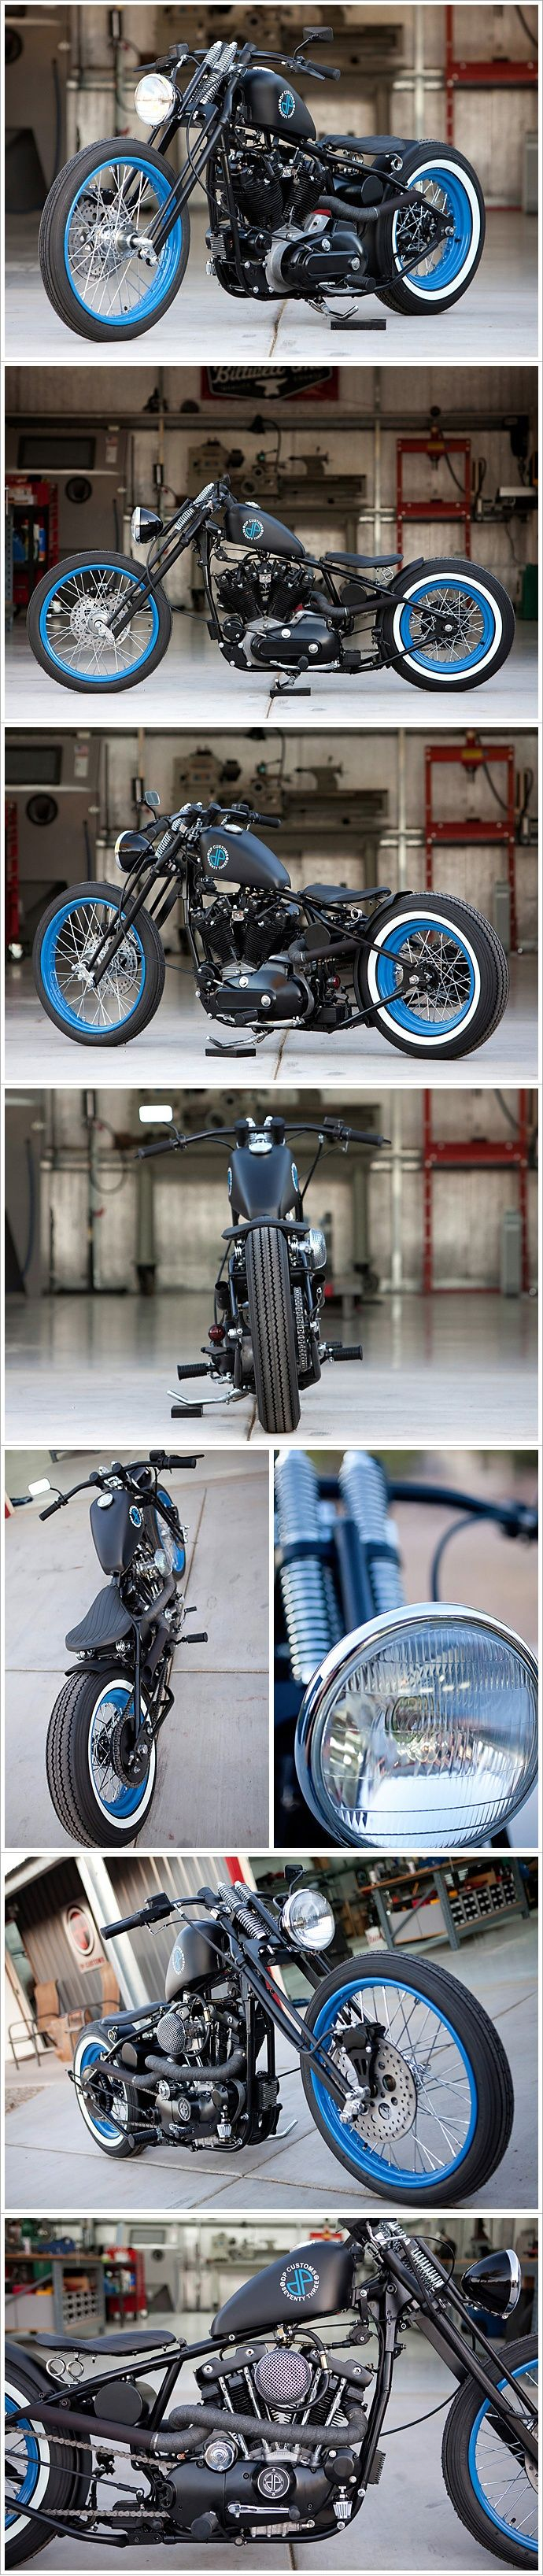 DP Customs – 'Seventy Three' Harley Ironhead